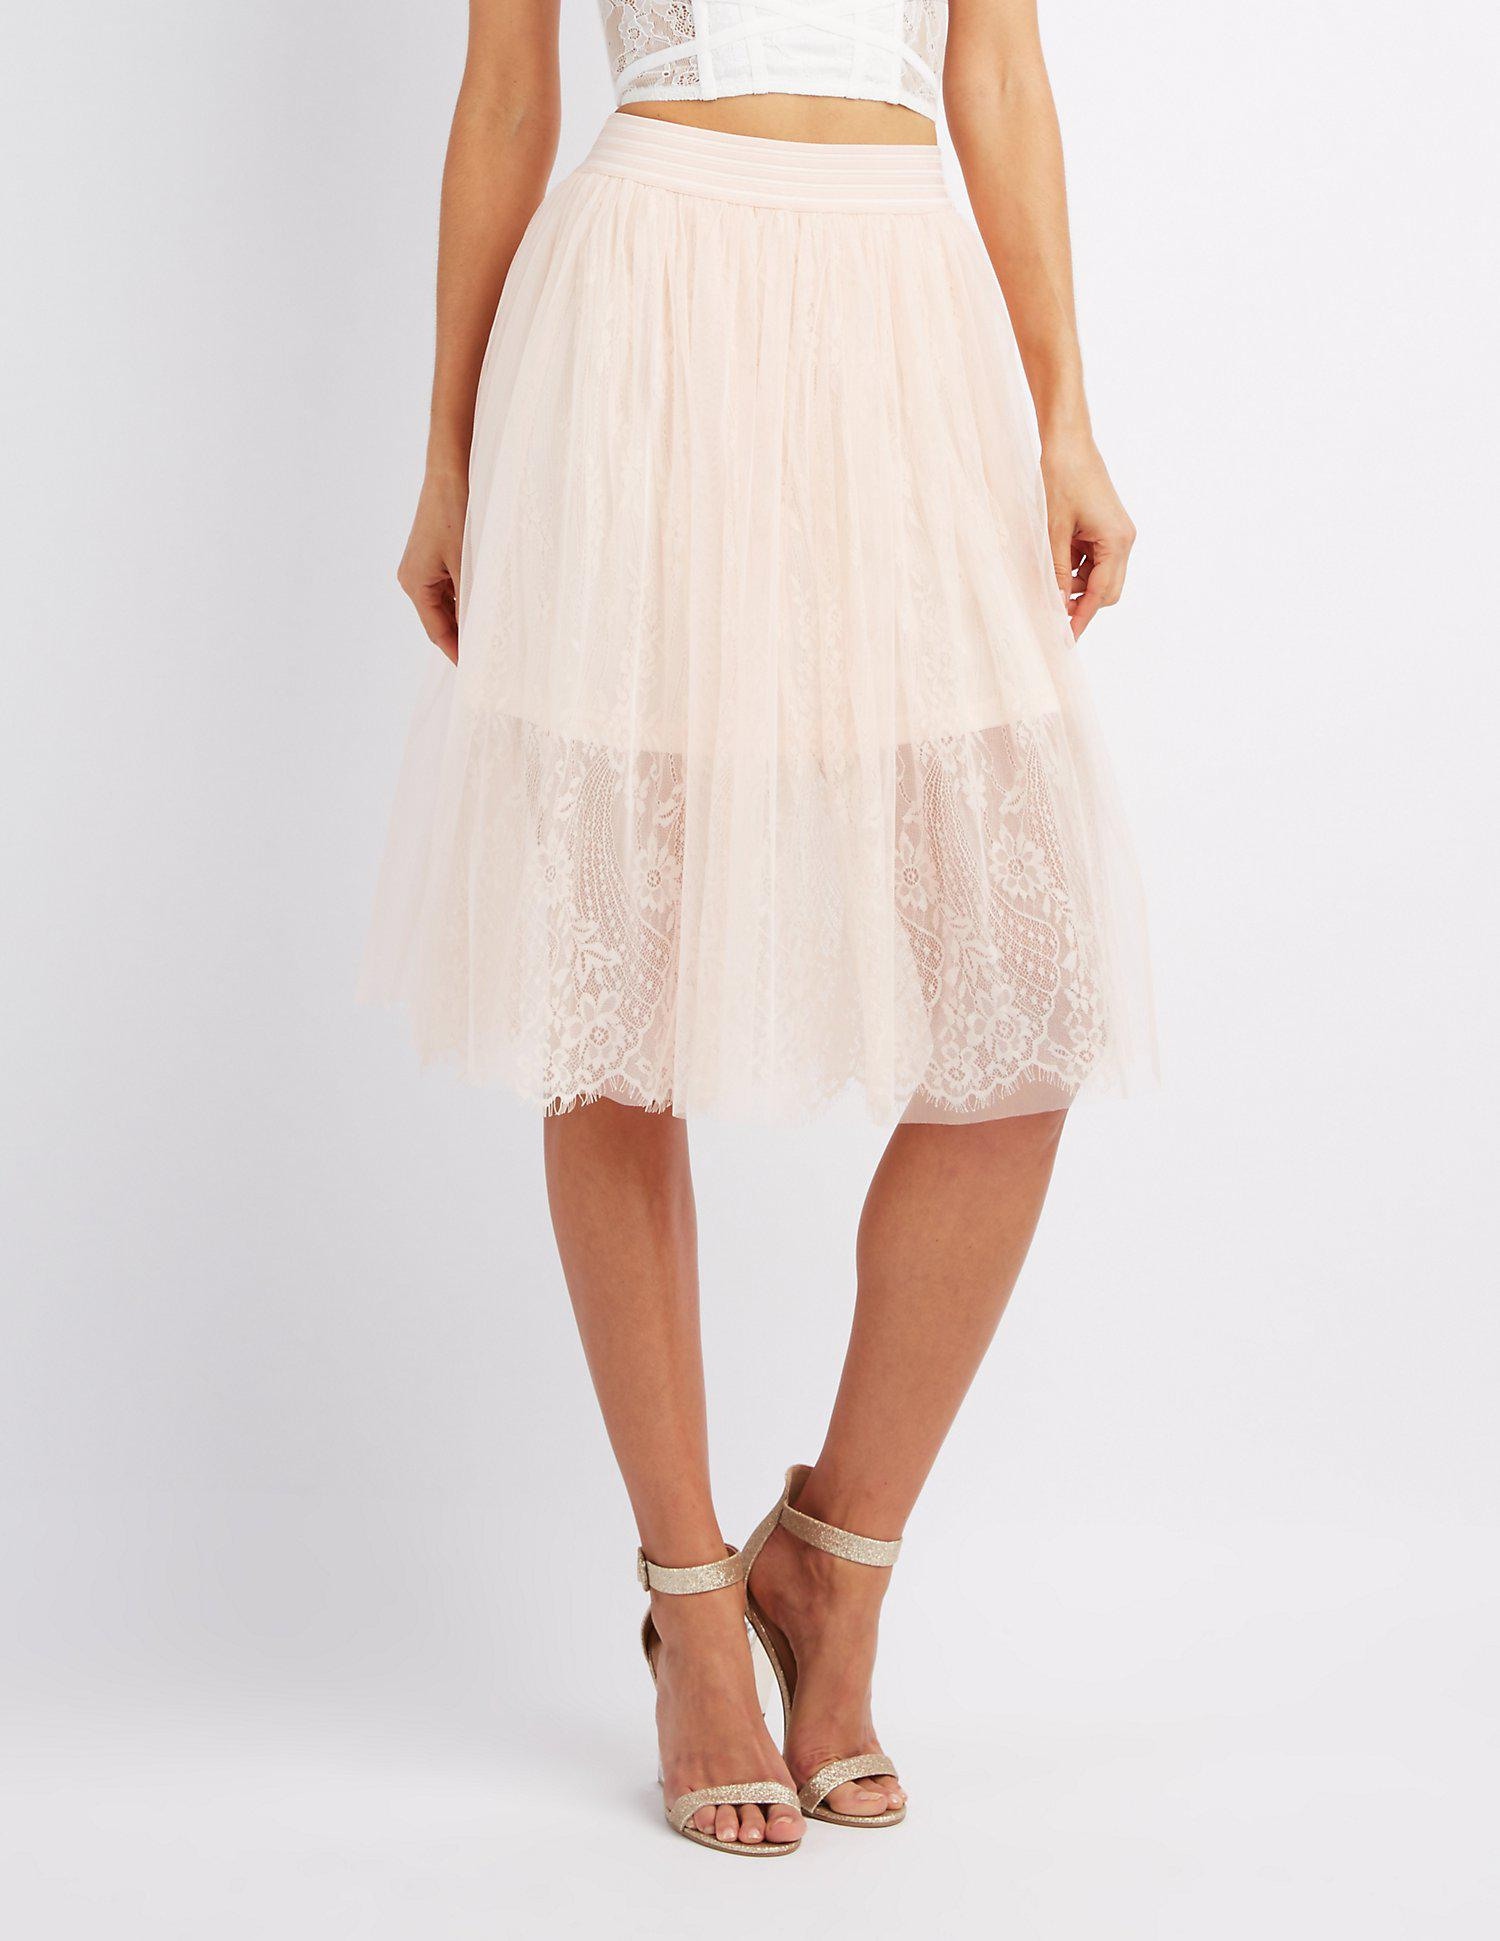 a572a66127 Gallery. Previously sold at: Charlotte Russe · Women's Tulle Skirts ...